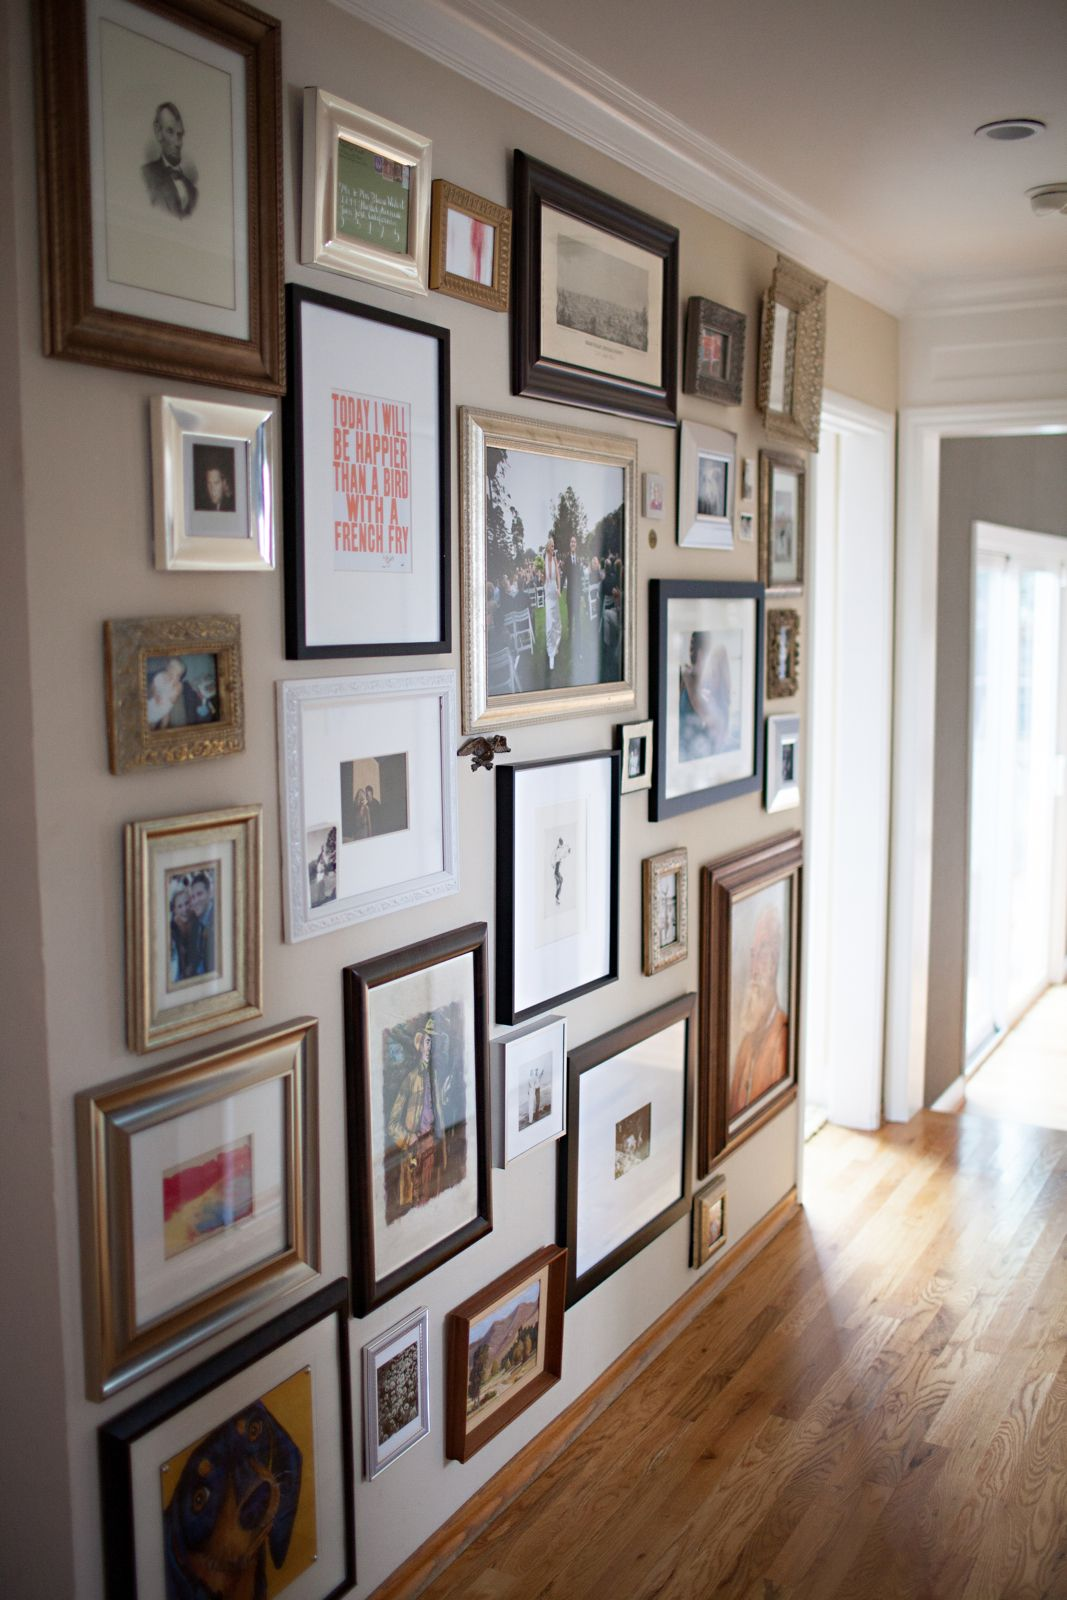 Gallery Wall Salon Style Hanging Hallway Everyone Should Have A Wall Of Things That Make Them Happy Photo Wall Gallery Wall Gallery Wall